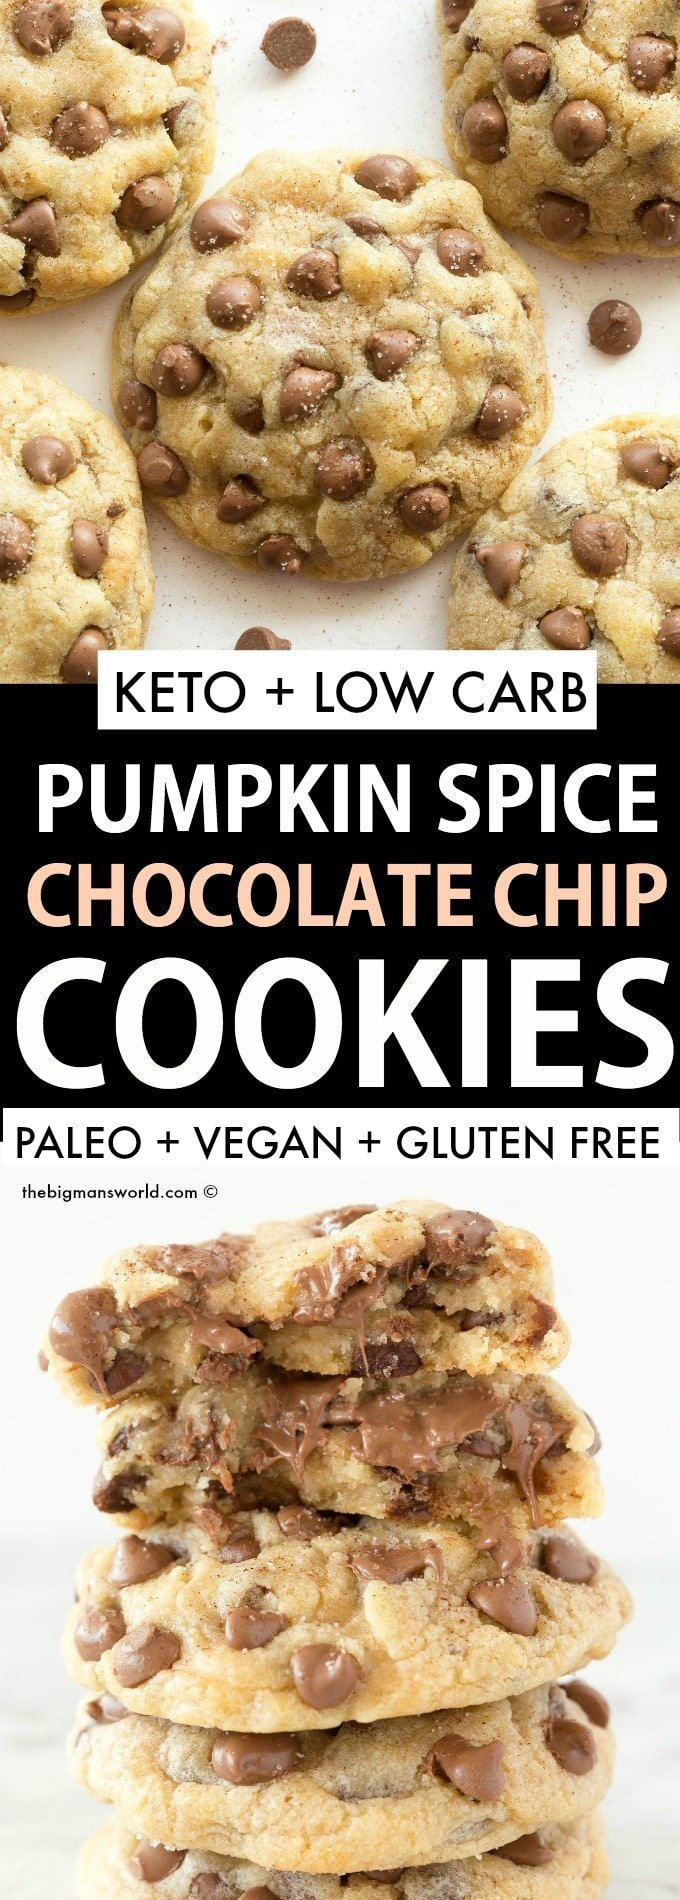 Keto Vegan Pumpkin Spice Chocolate Chip Cookies Recipe